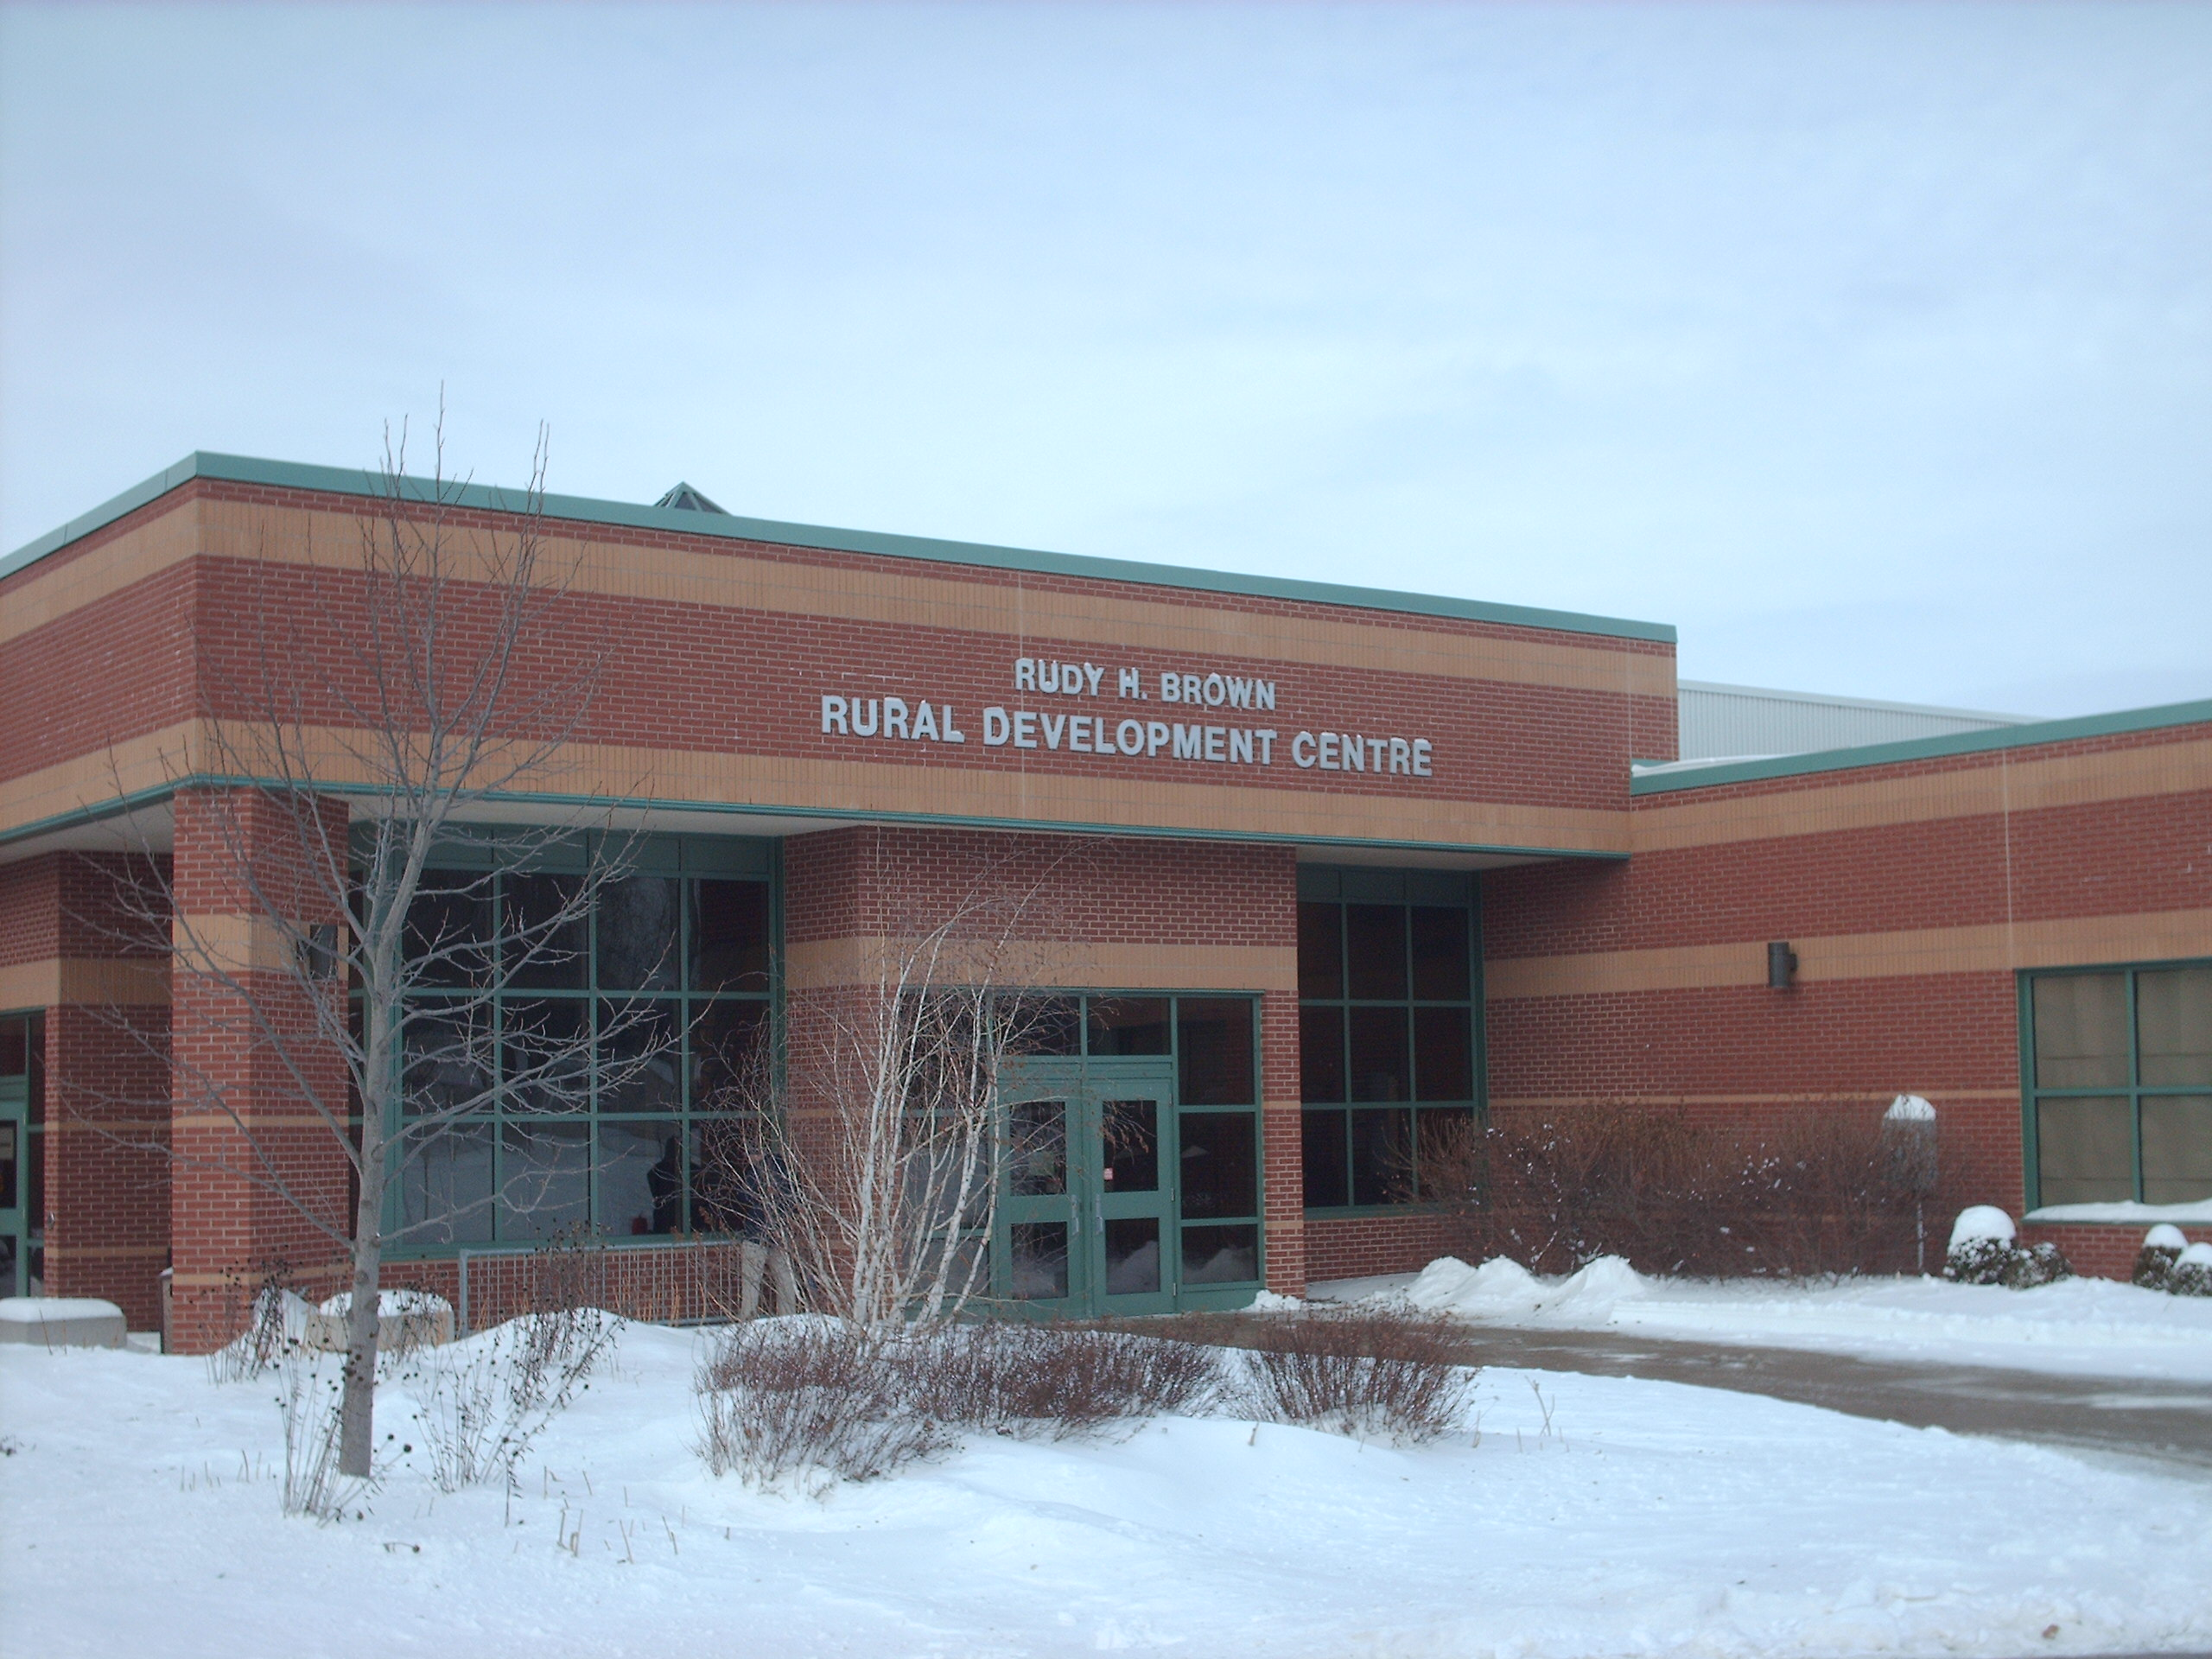 Rural Development Centre University of Guelph Ridgetown Campus (Photo by Simon Crouch)